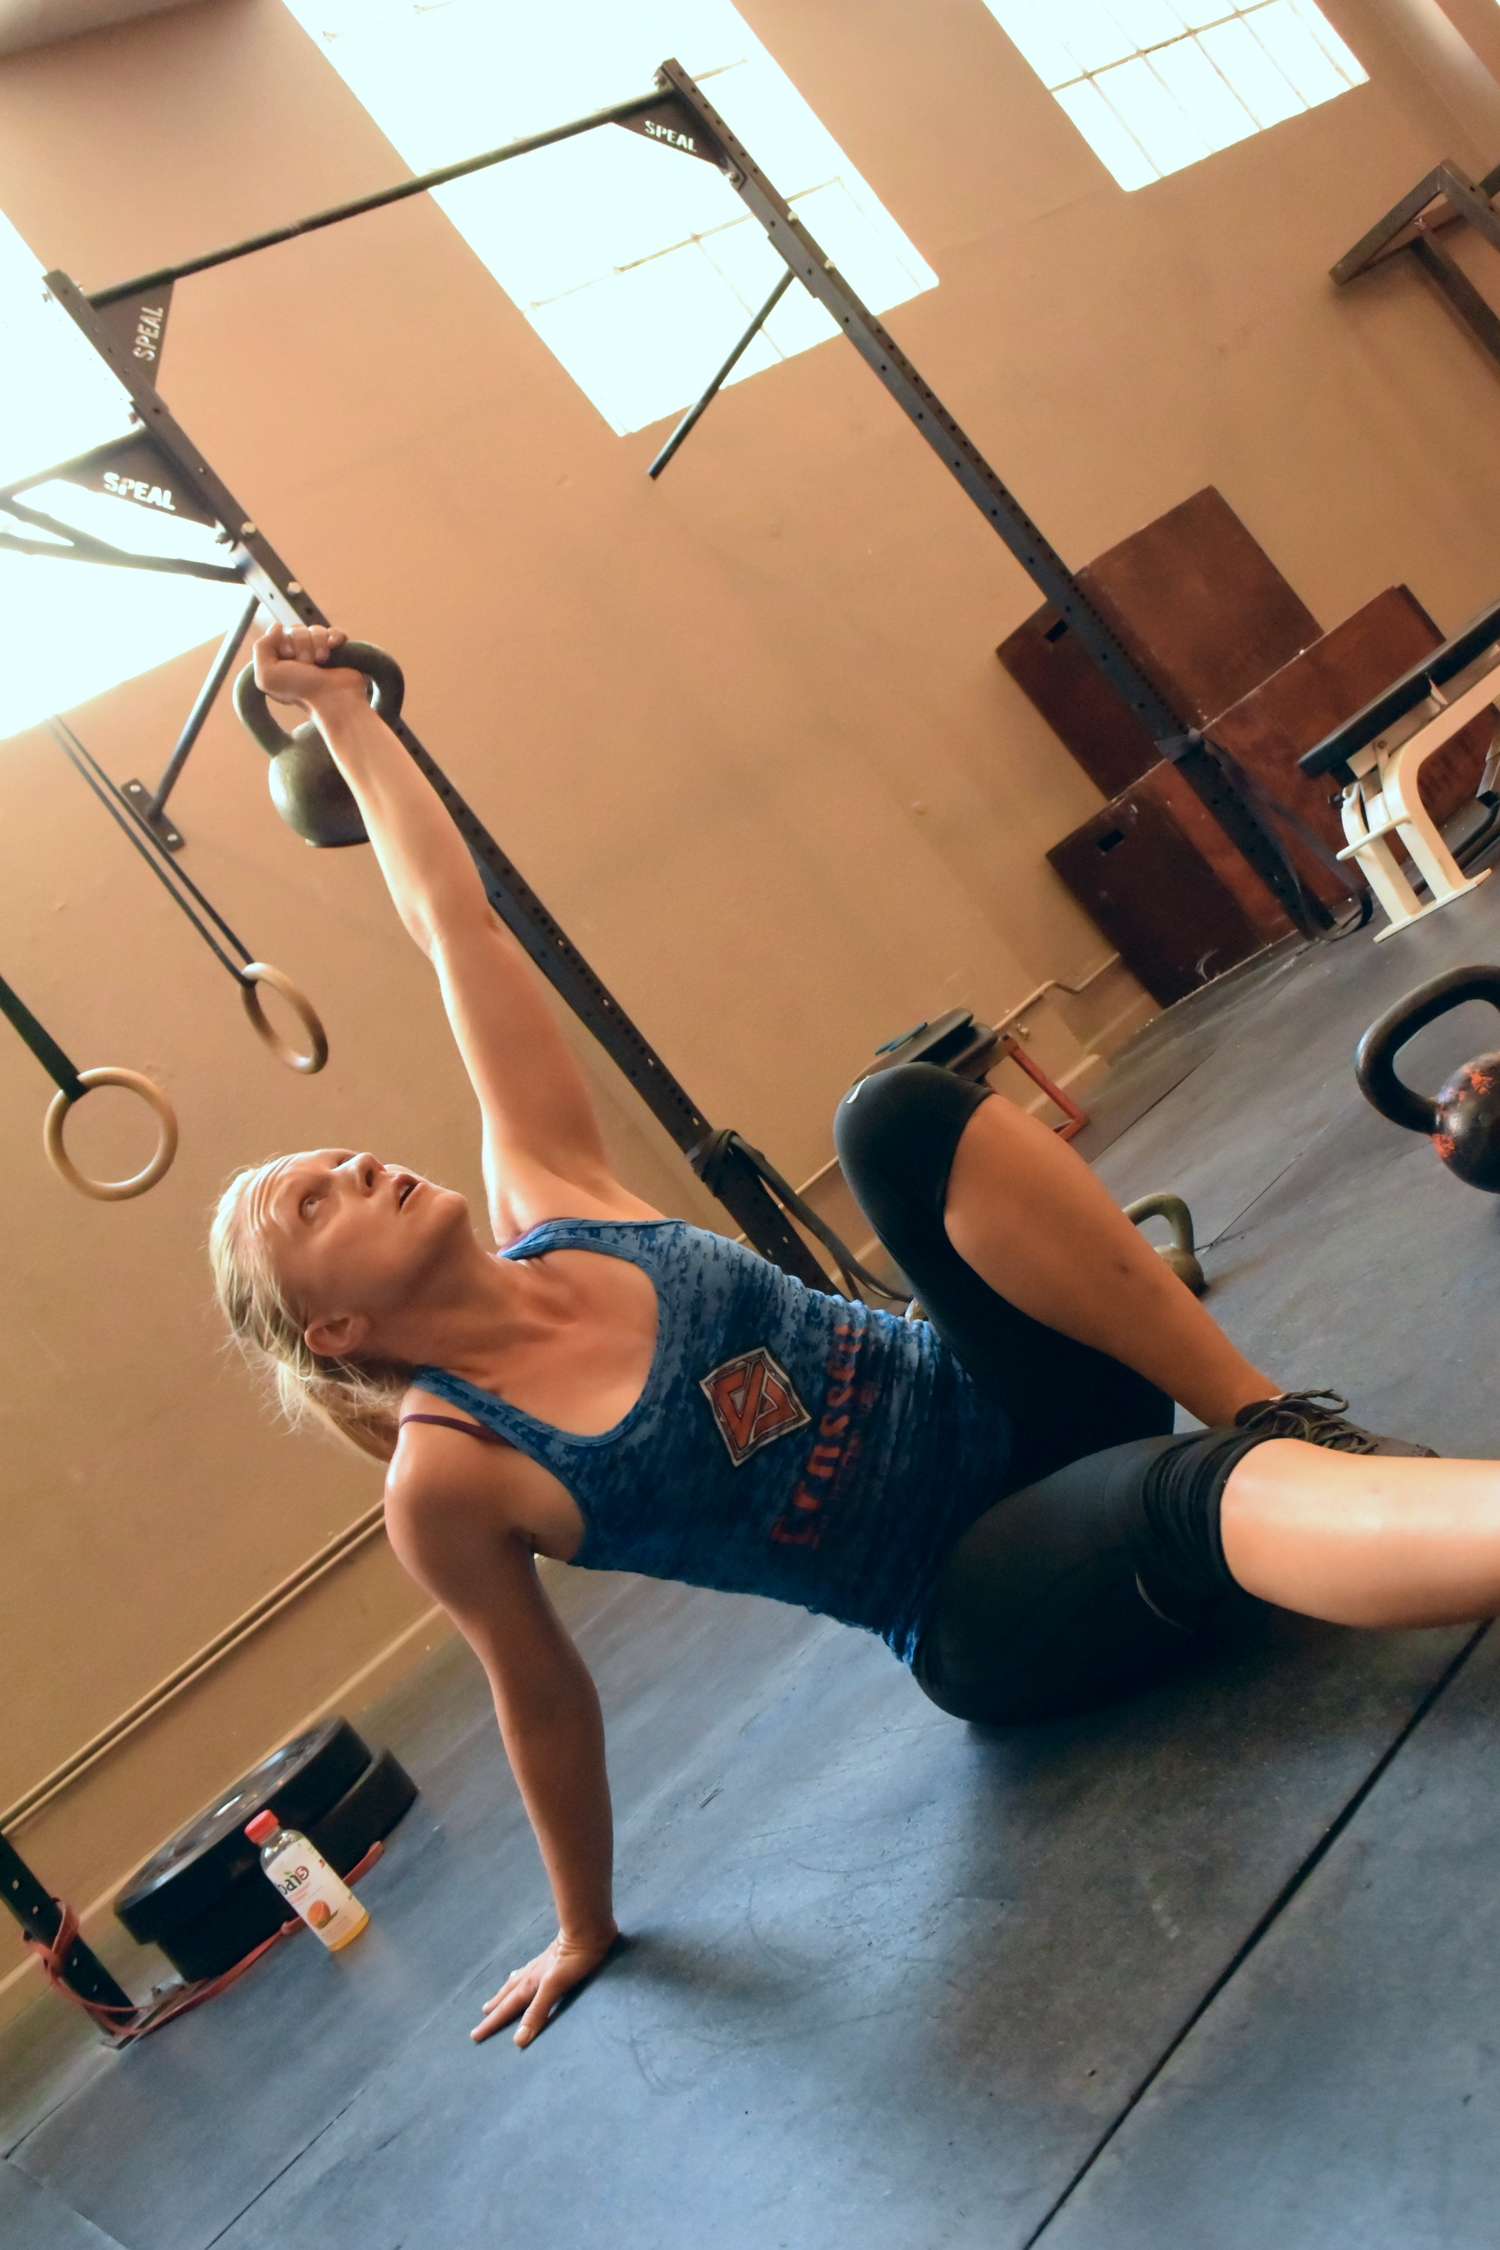 Come to the noon class to join Dr Chris Hillson and perform amazing feats of strength!